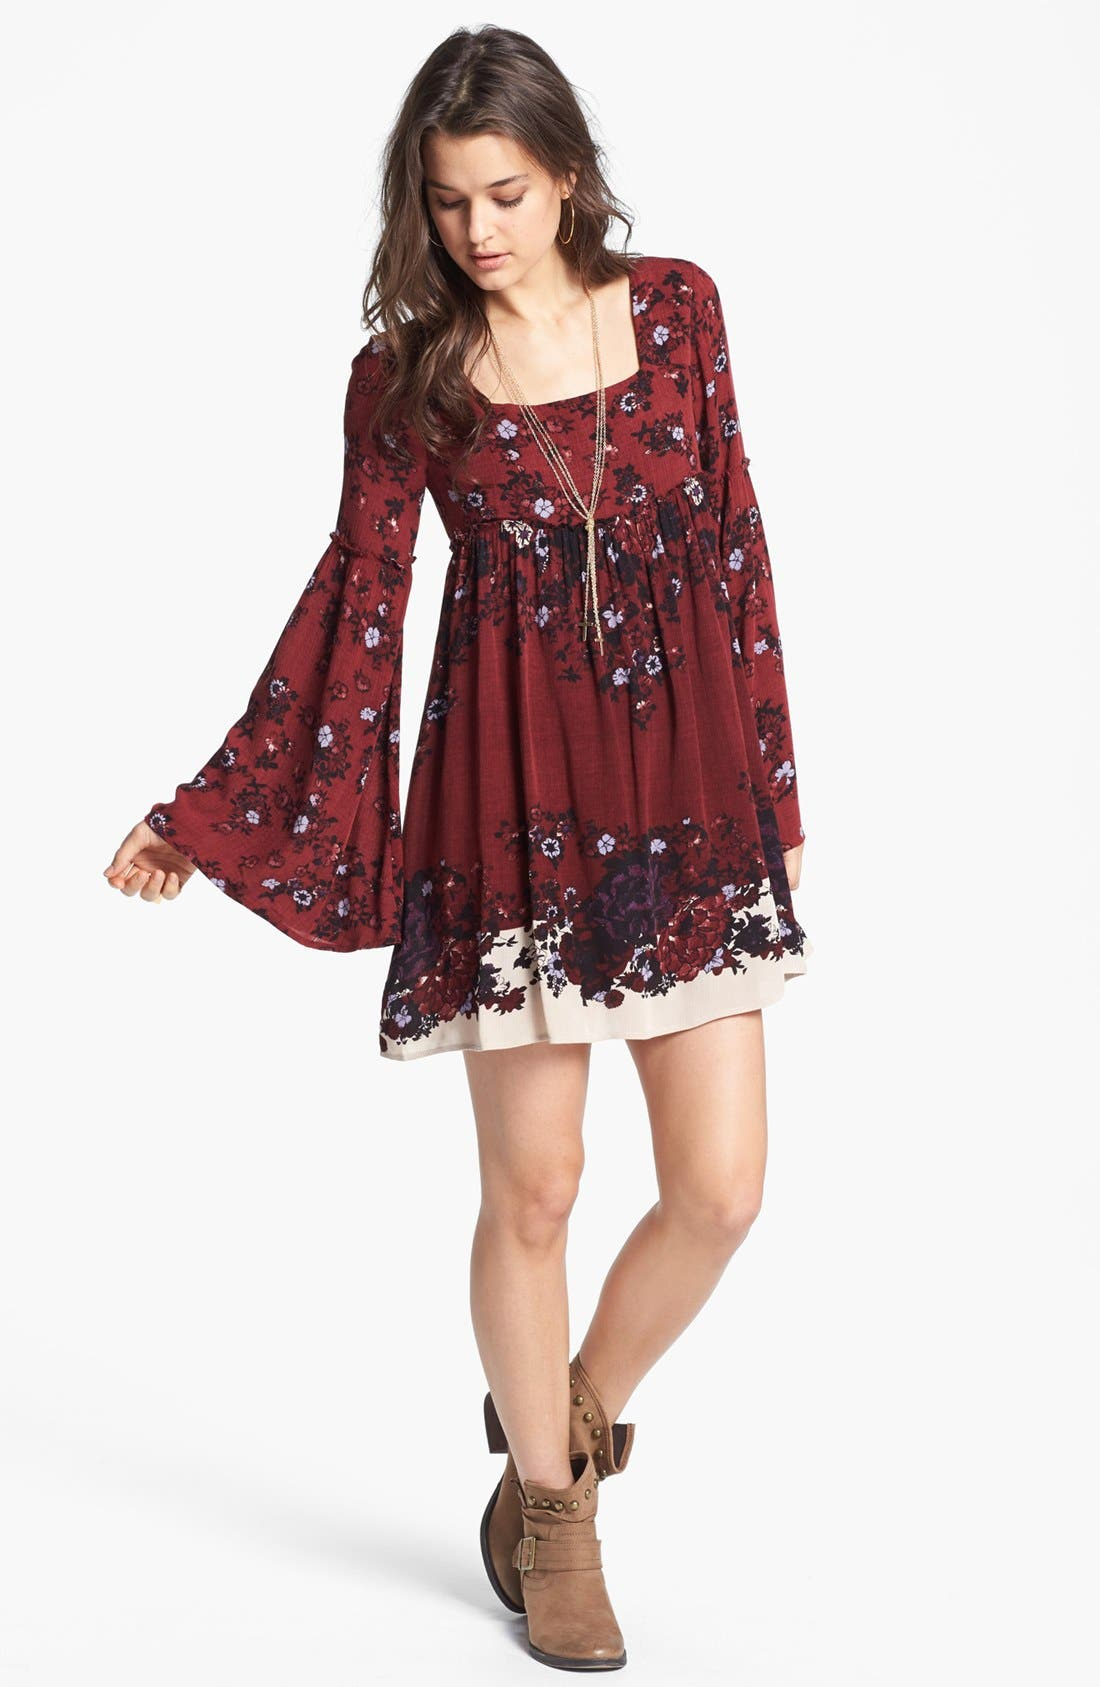 Alternate Image 1 Selected - Free People 'Snap Out of It' Print Minidress